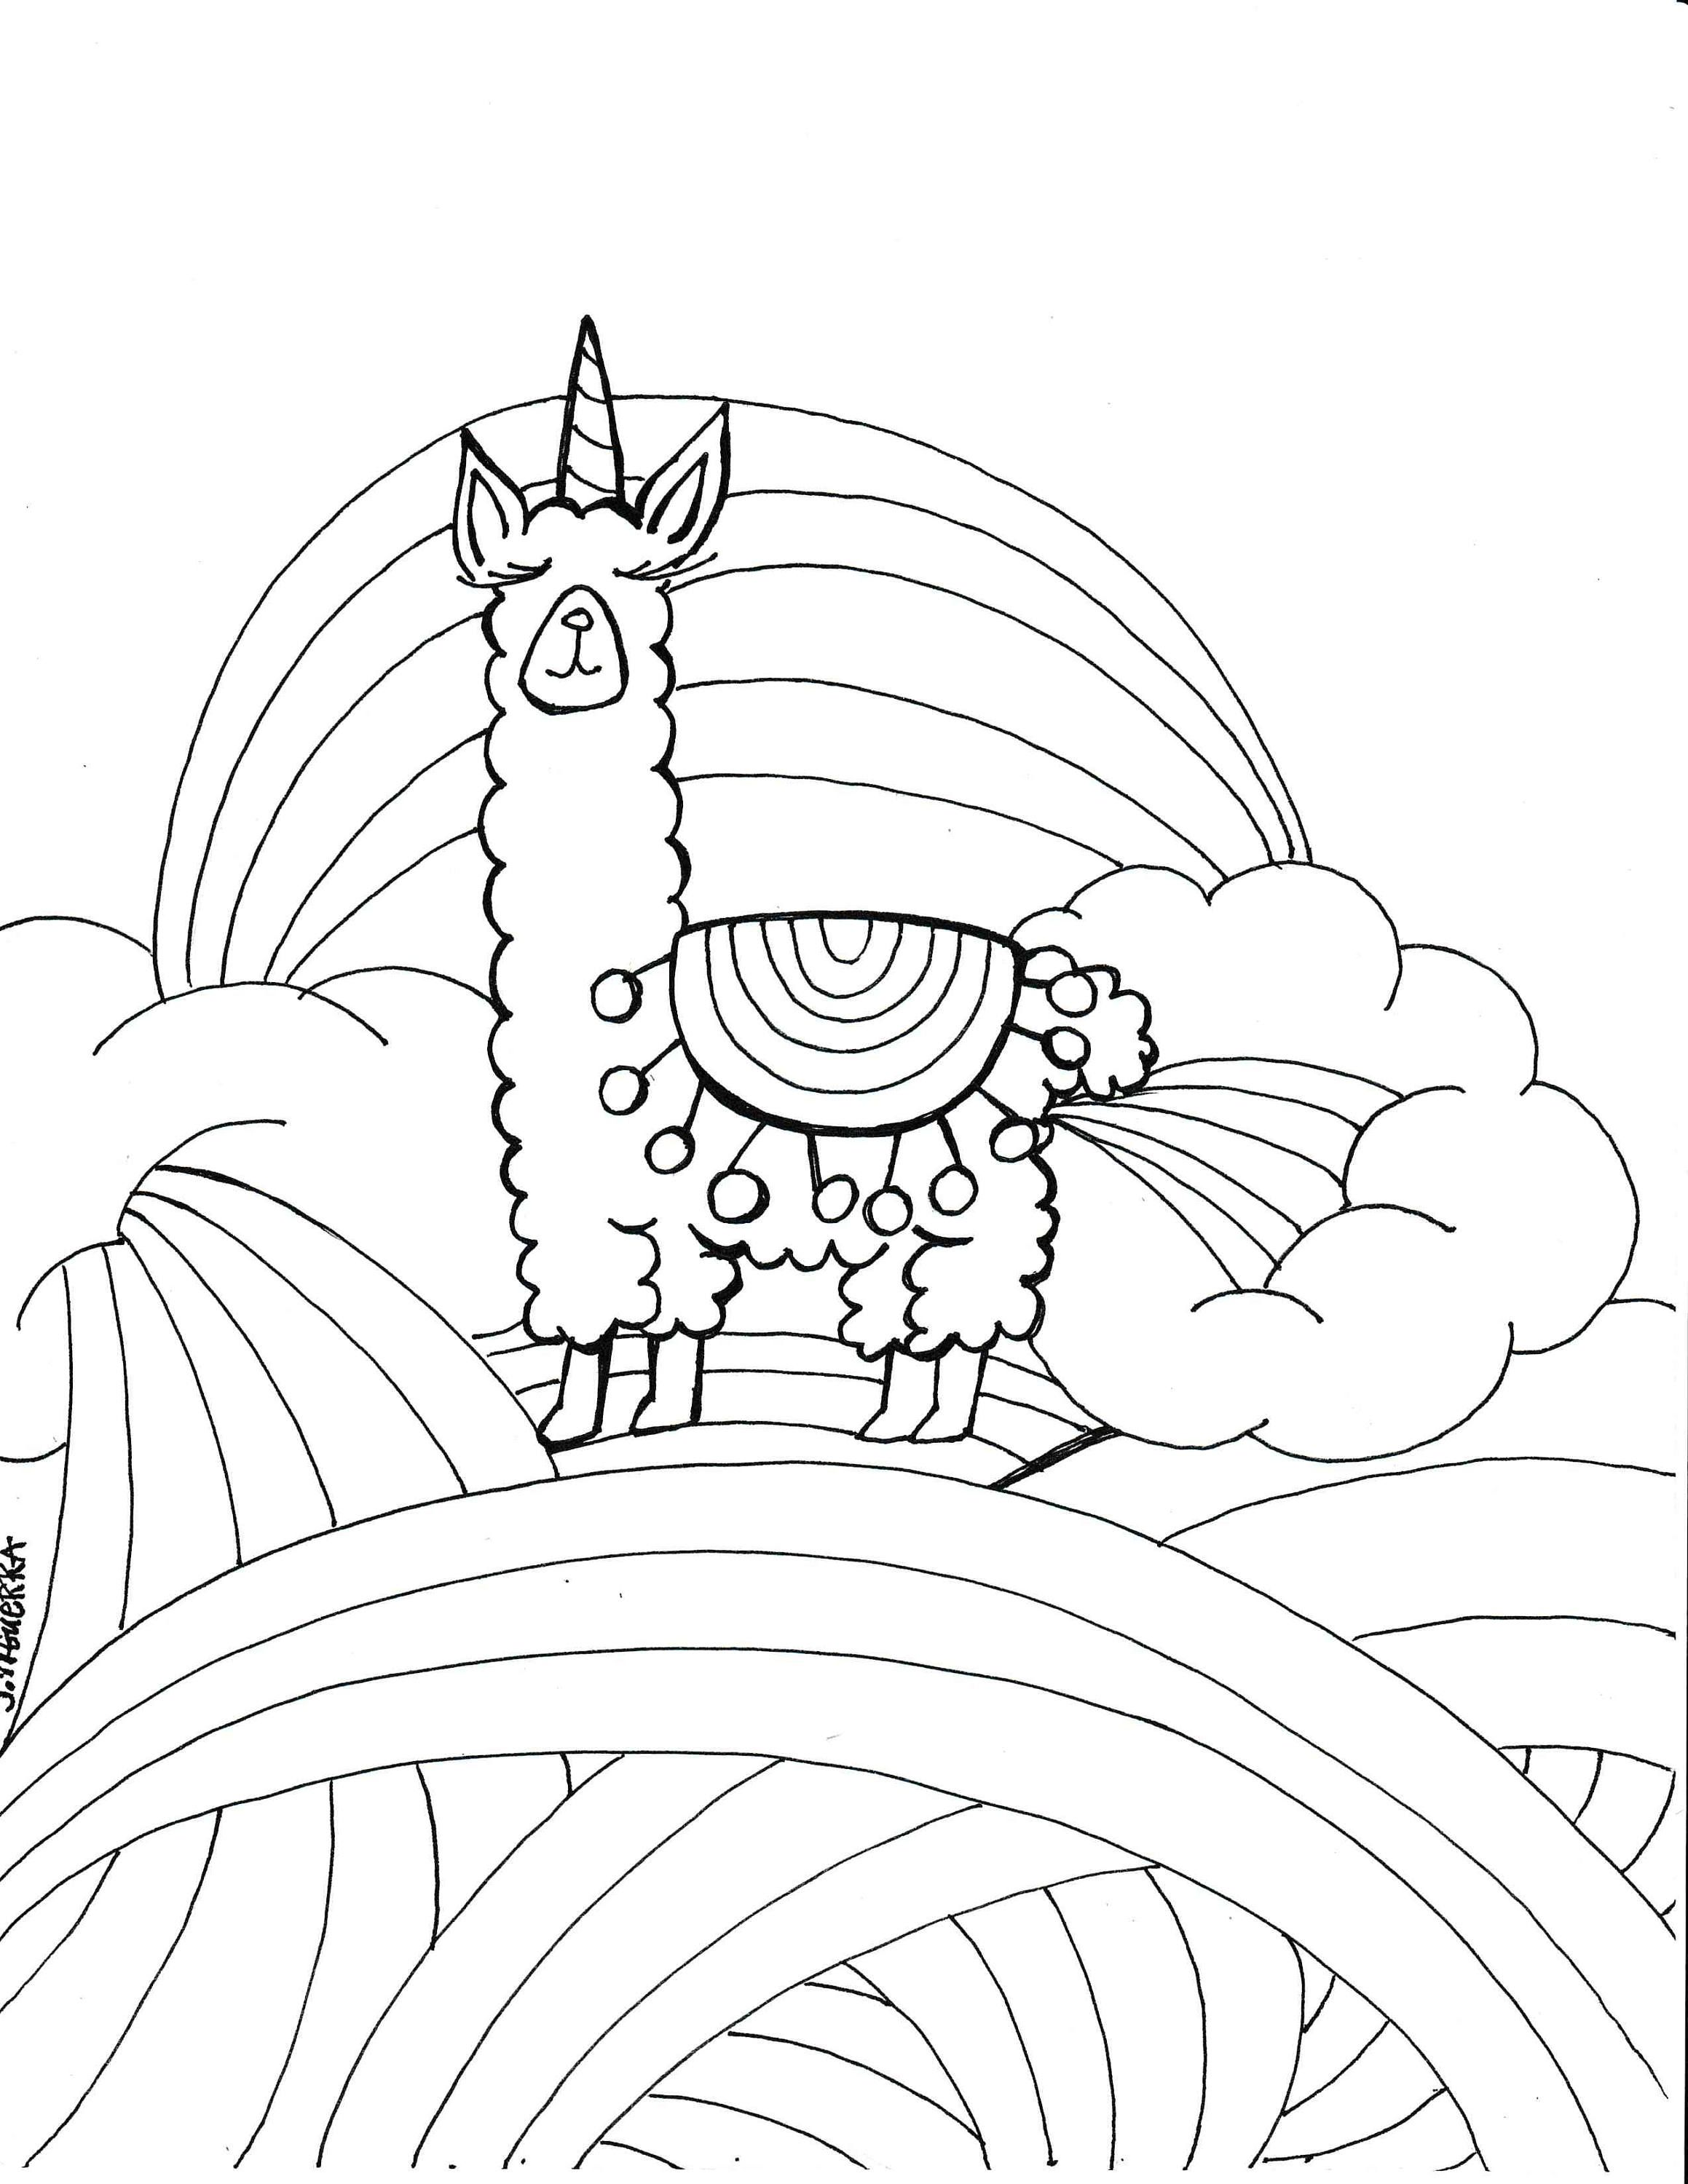 Llamacorn Coloring Page Printable Art By Journalingart On Etsy